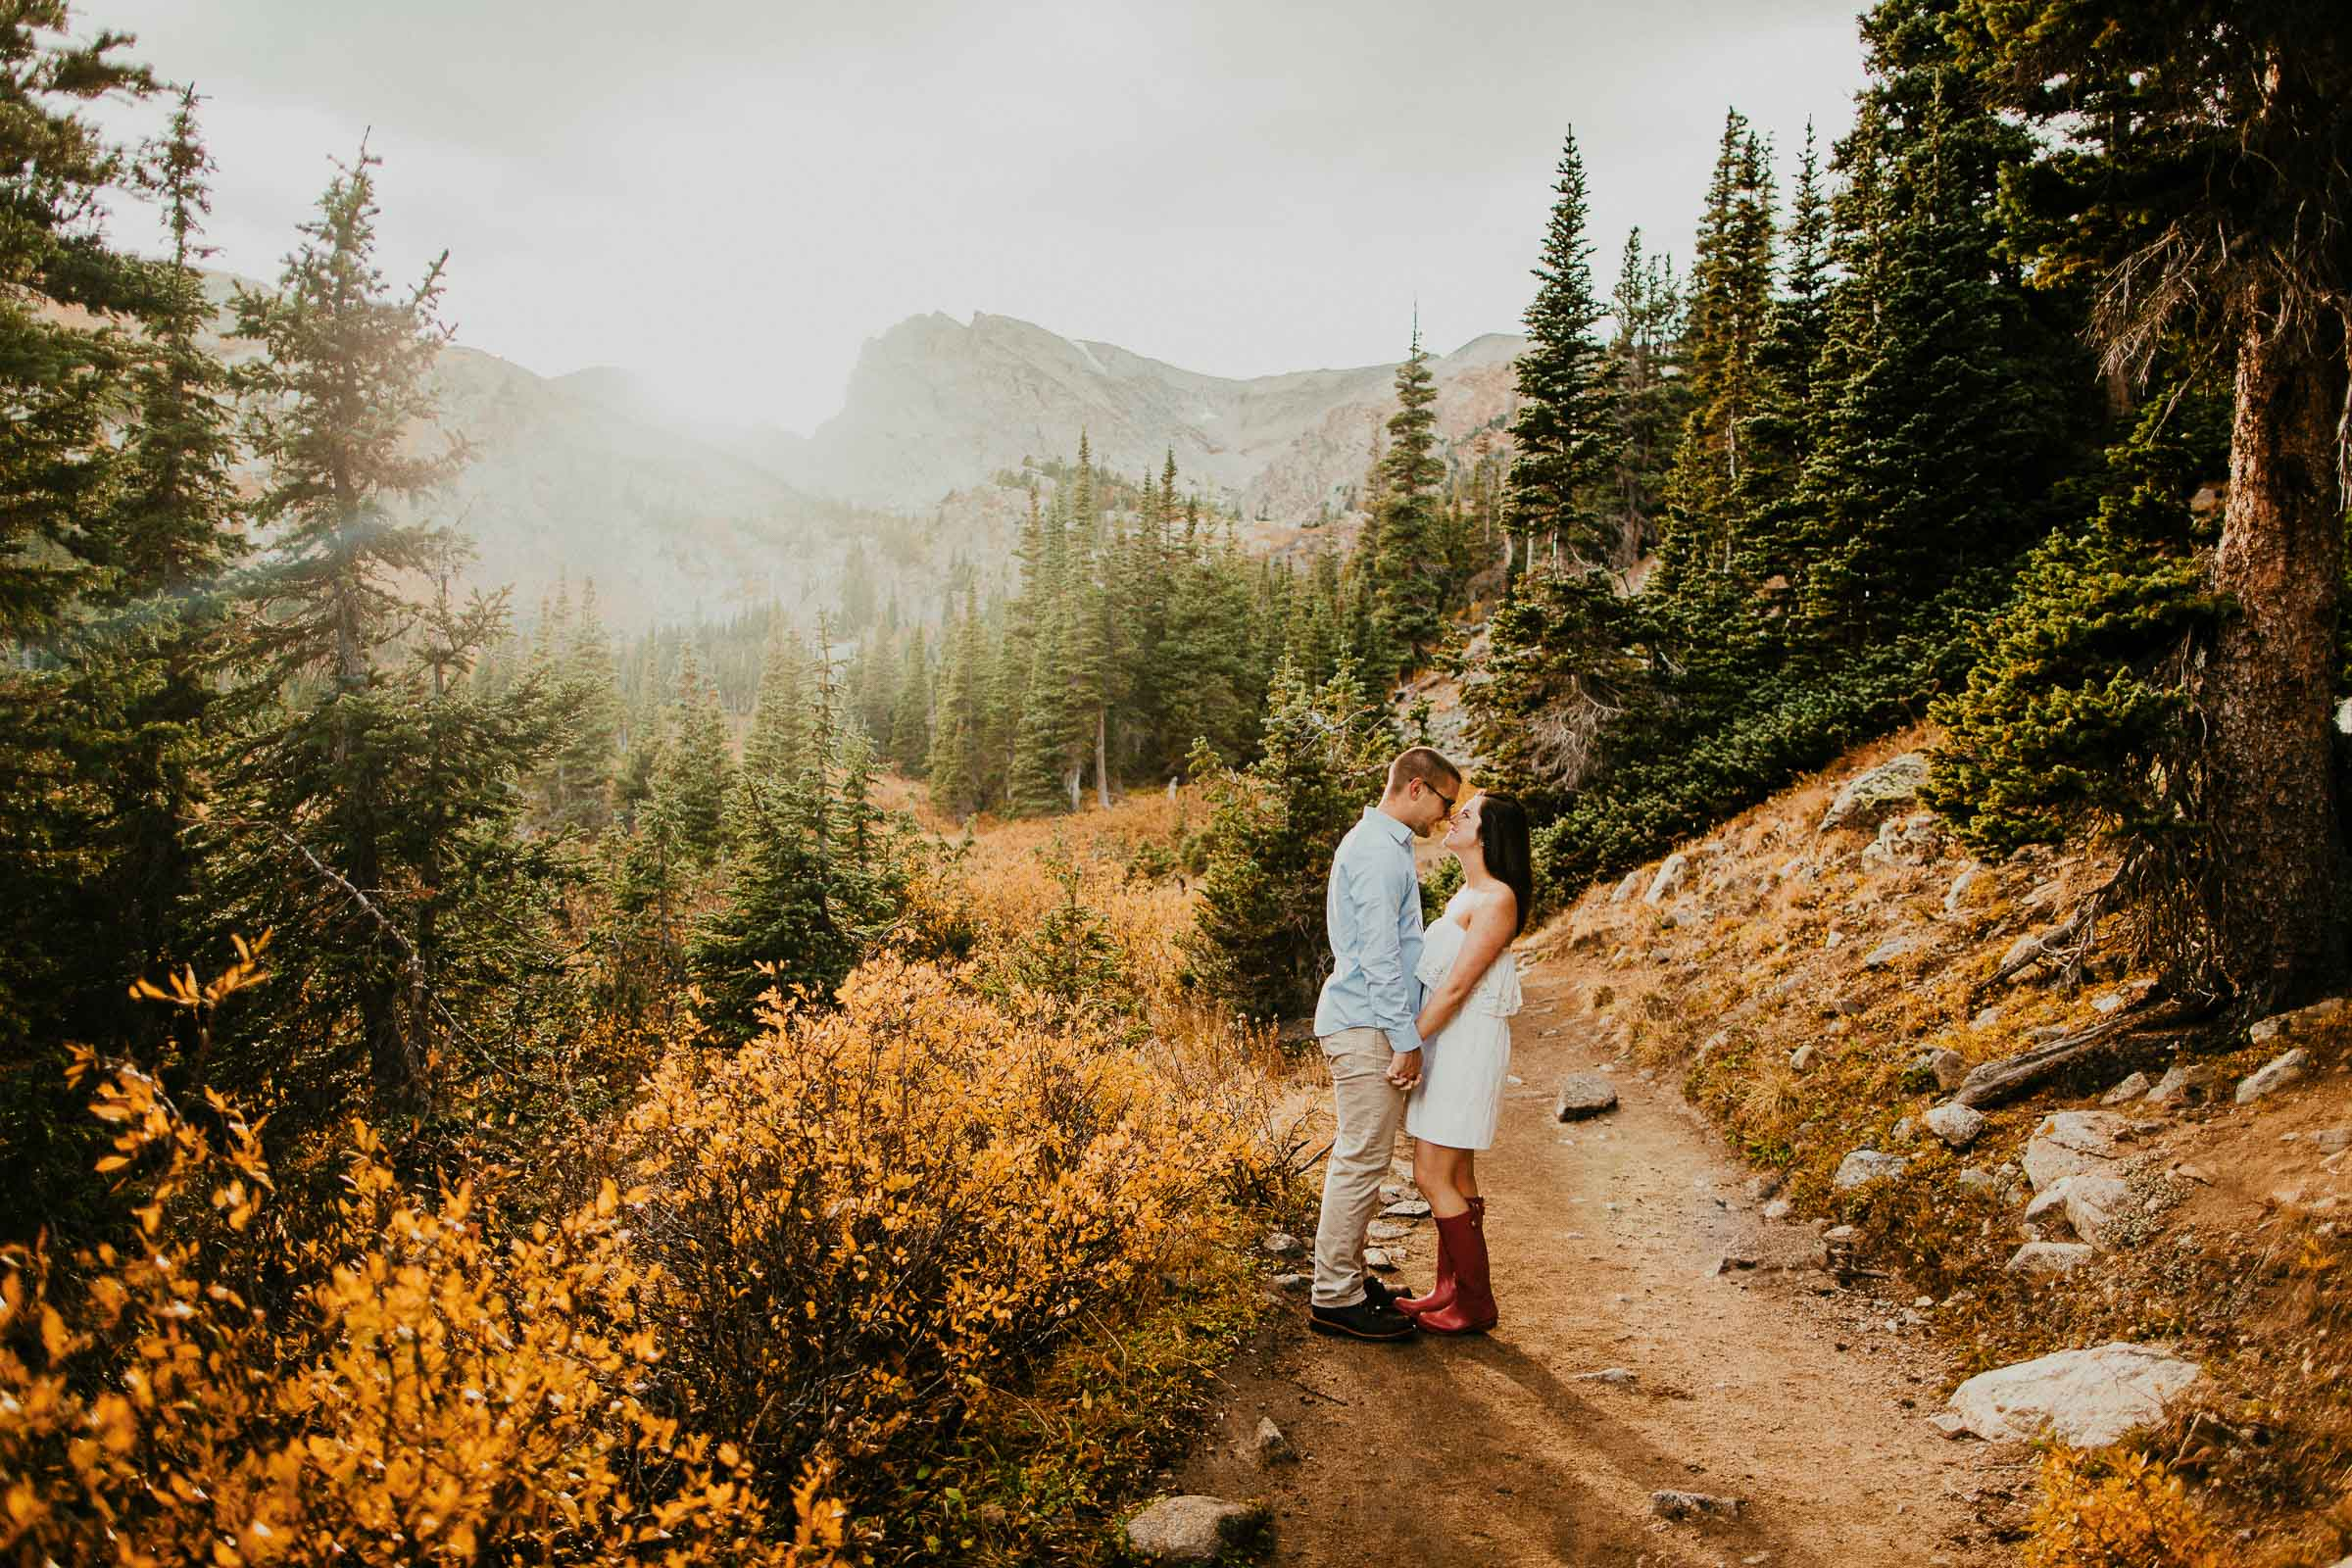 Joe + Bree  Lake Isabelle Trail Engagement Session in Colorado   VIEW